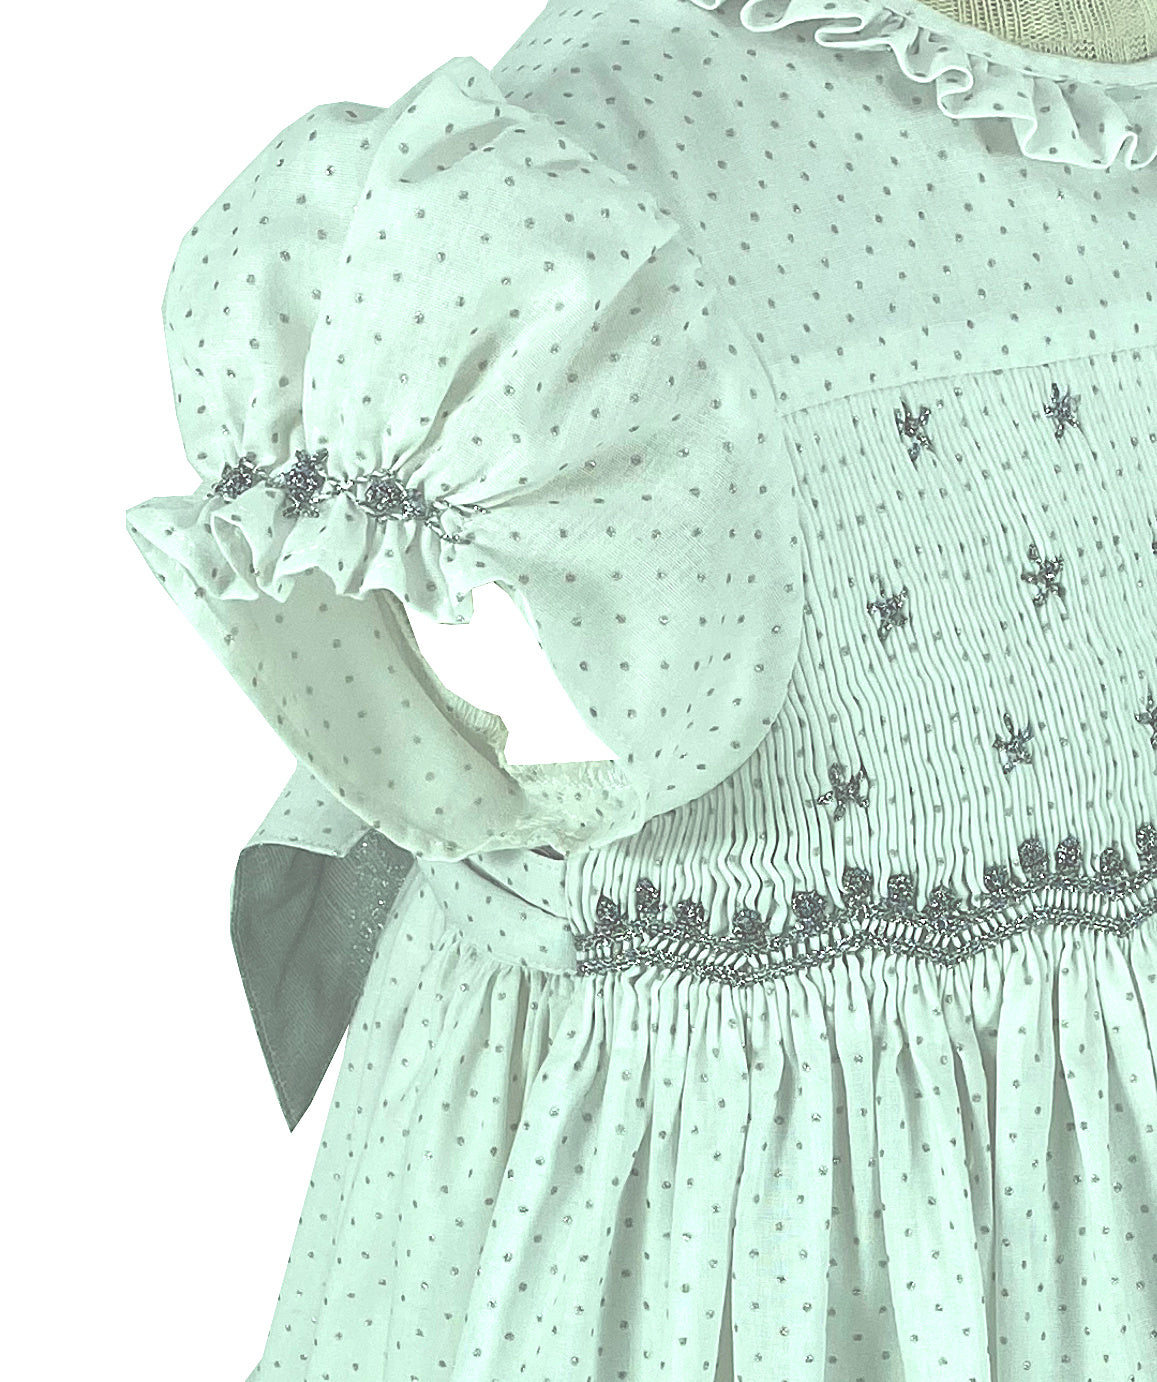 Handmade smocked dress couture details